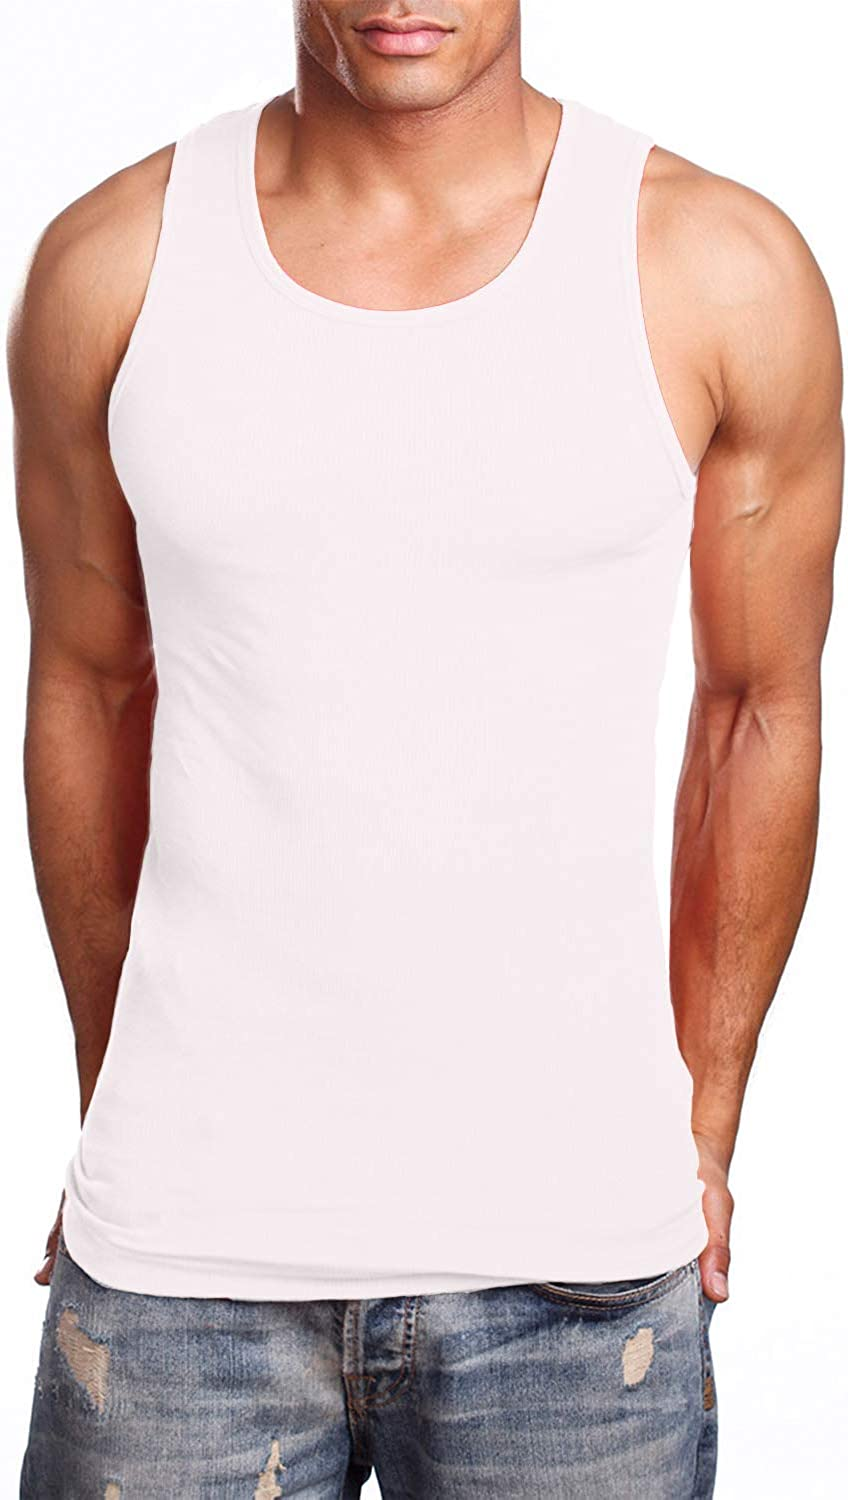 NE PEOPLE Men's Everyday Active Comfy Ribbed Knit Cotton A-Shirts Undershirts Sleeveless Tank Tops S-5XL